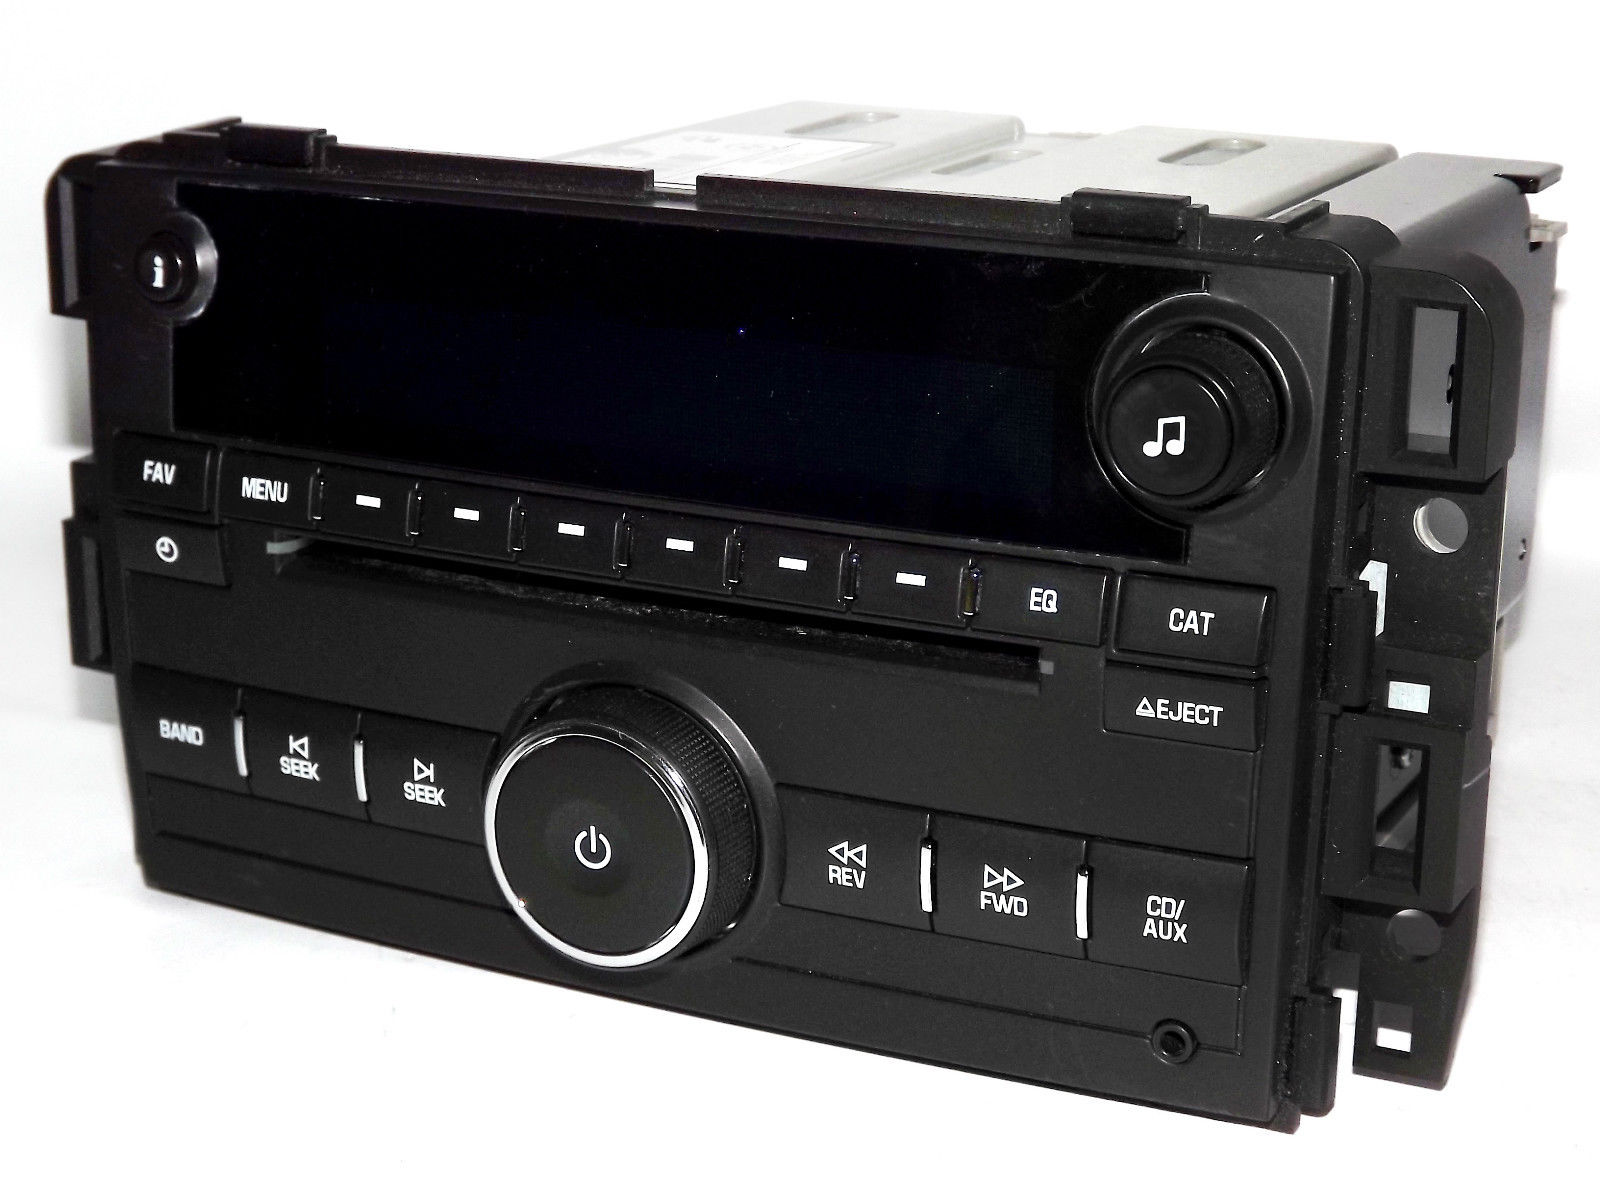 hight resolution of 2010 15 chevy gmc truck am fm cd radio w usb aux mp3 input uui gm p n 20934592 wiring schematic